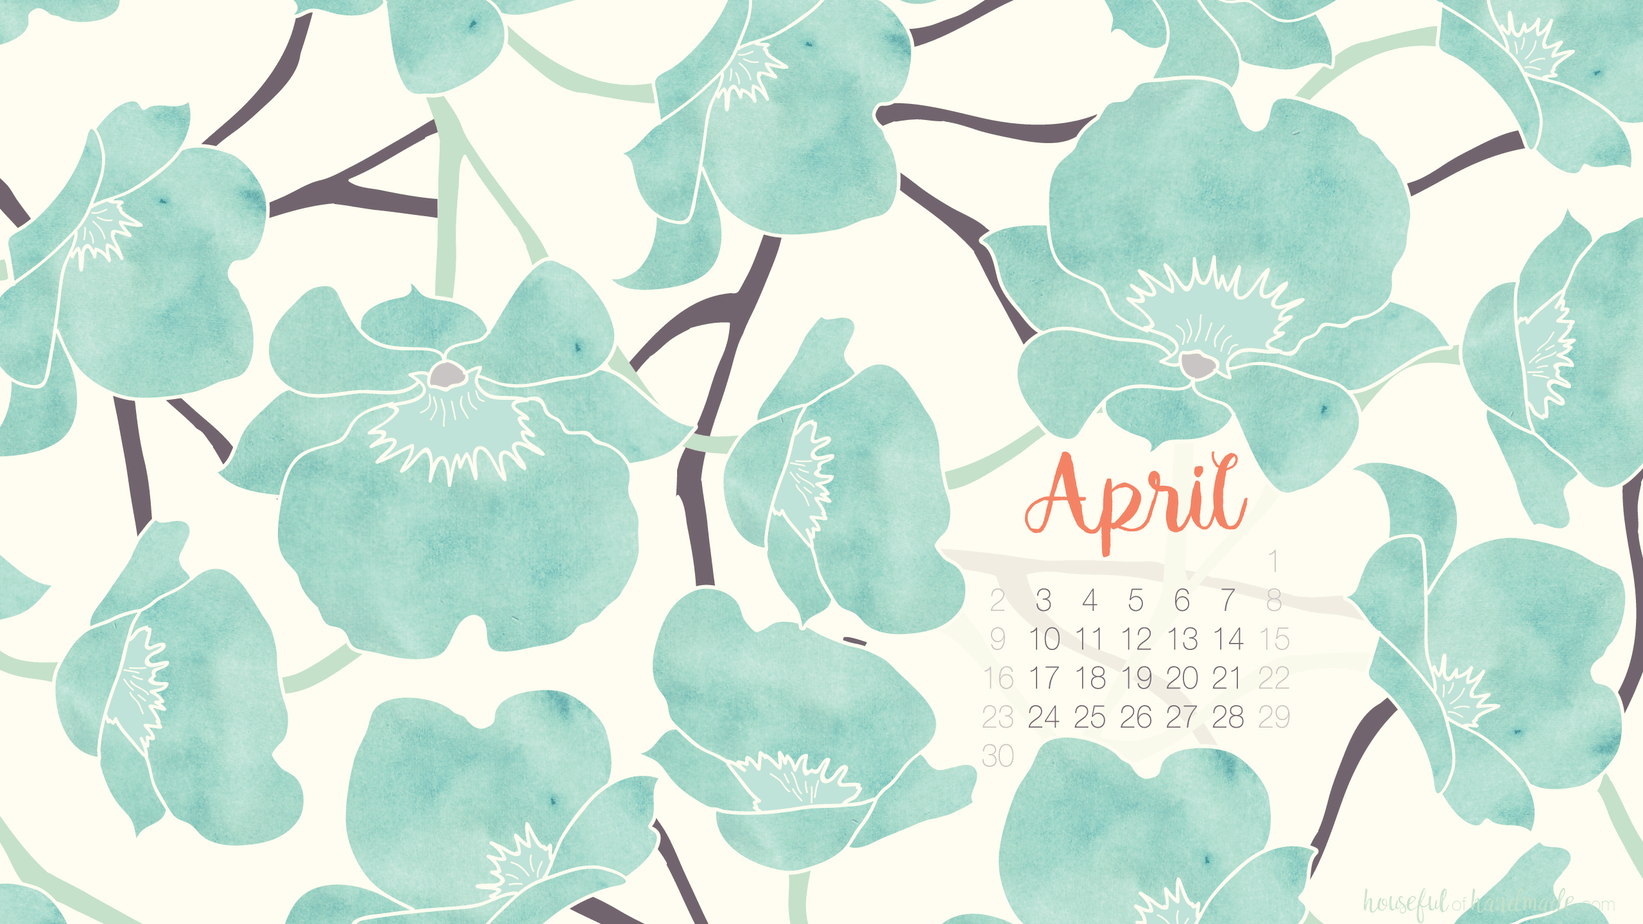 April Calendar Background : Free digital backgrounds for april a houseful of handmade